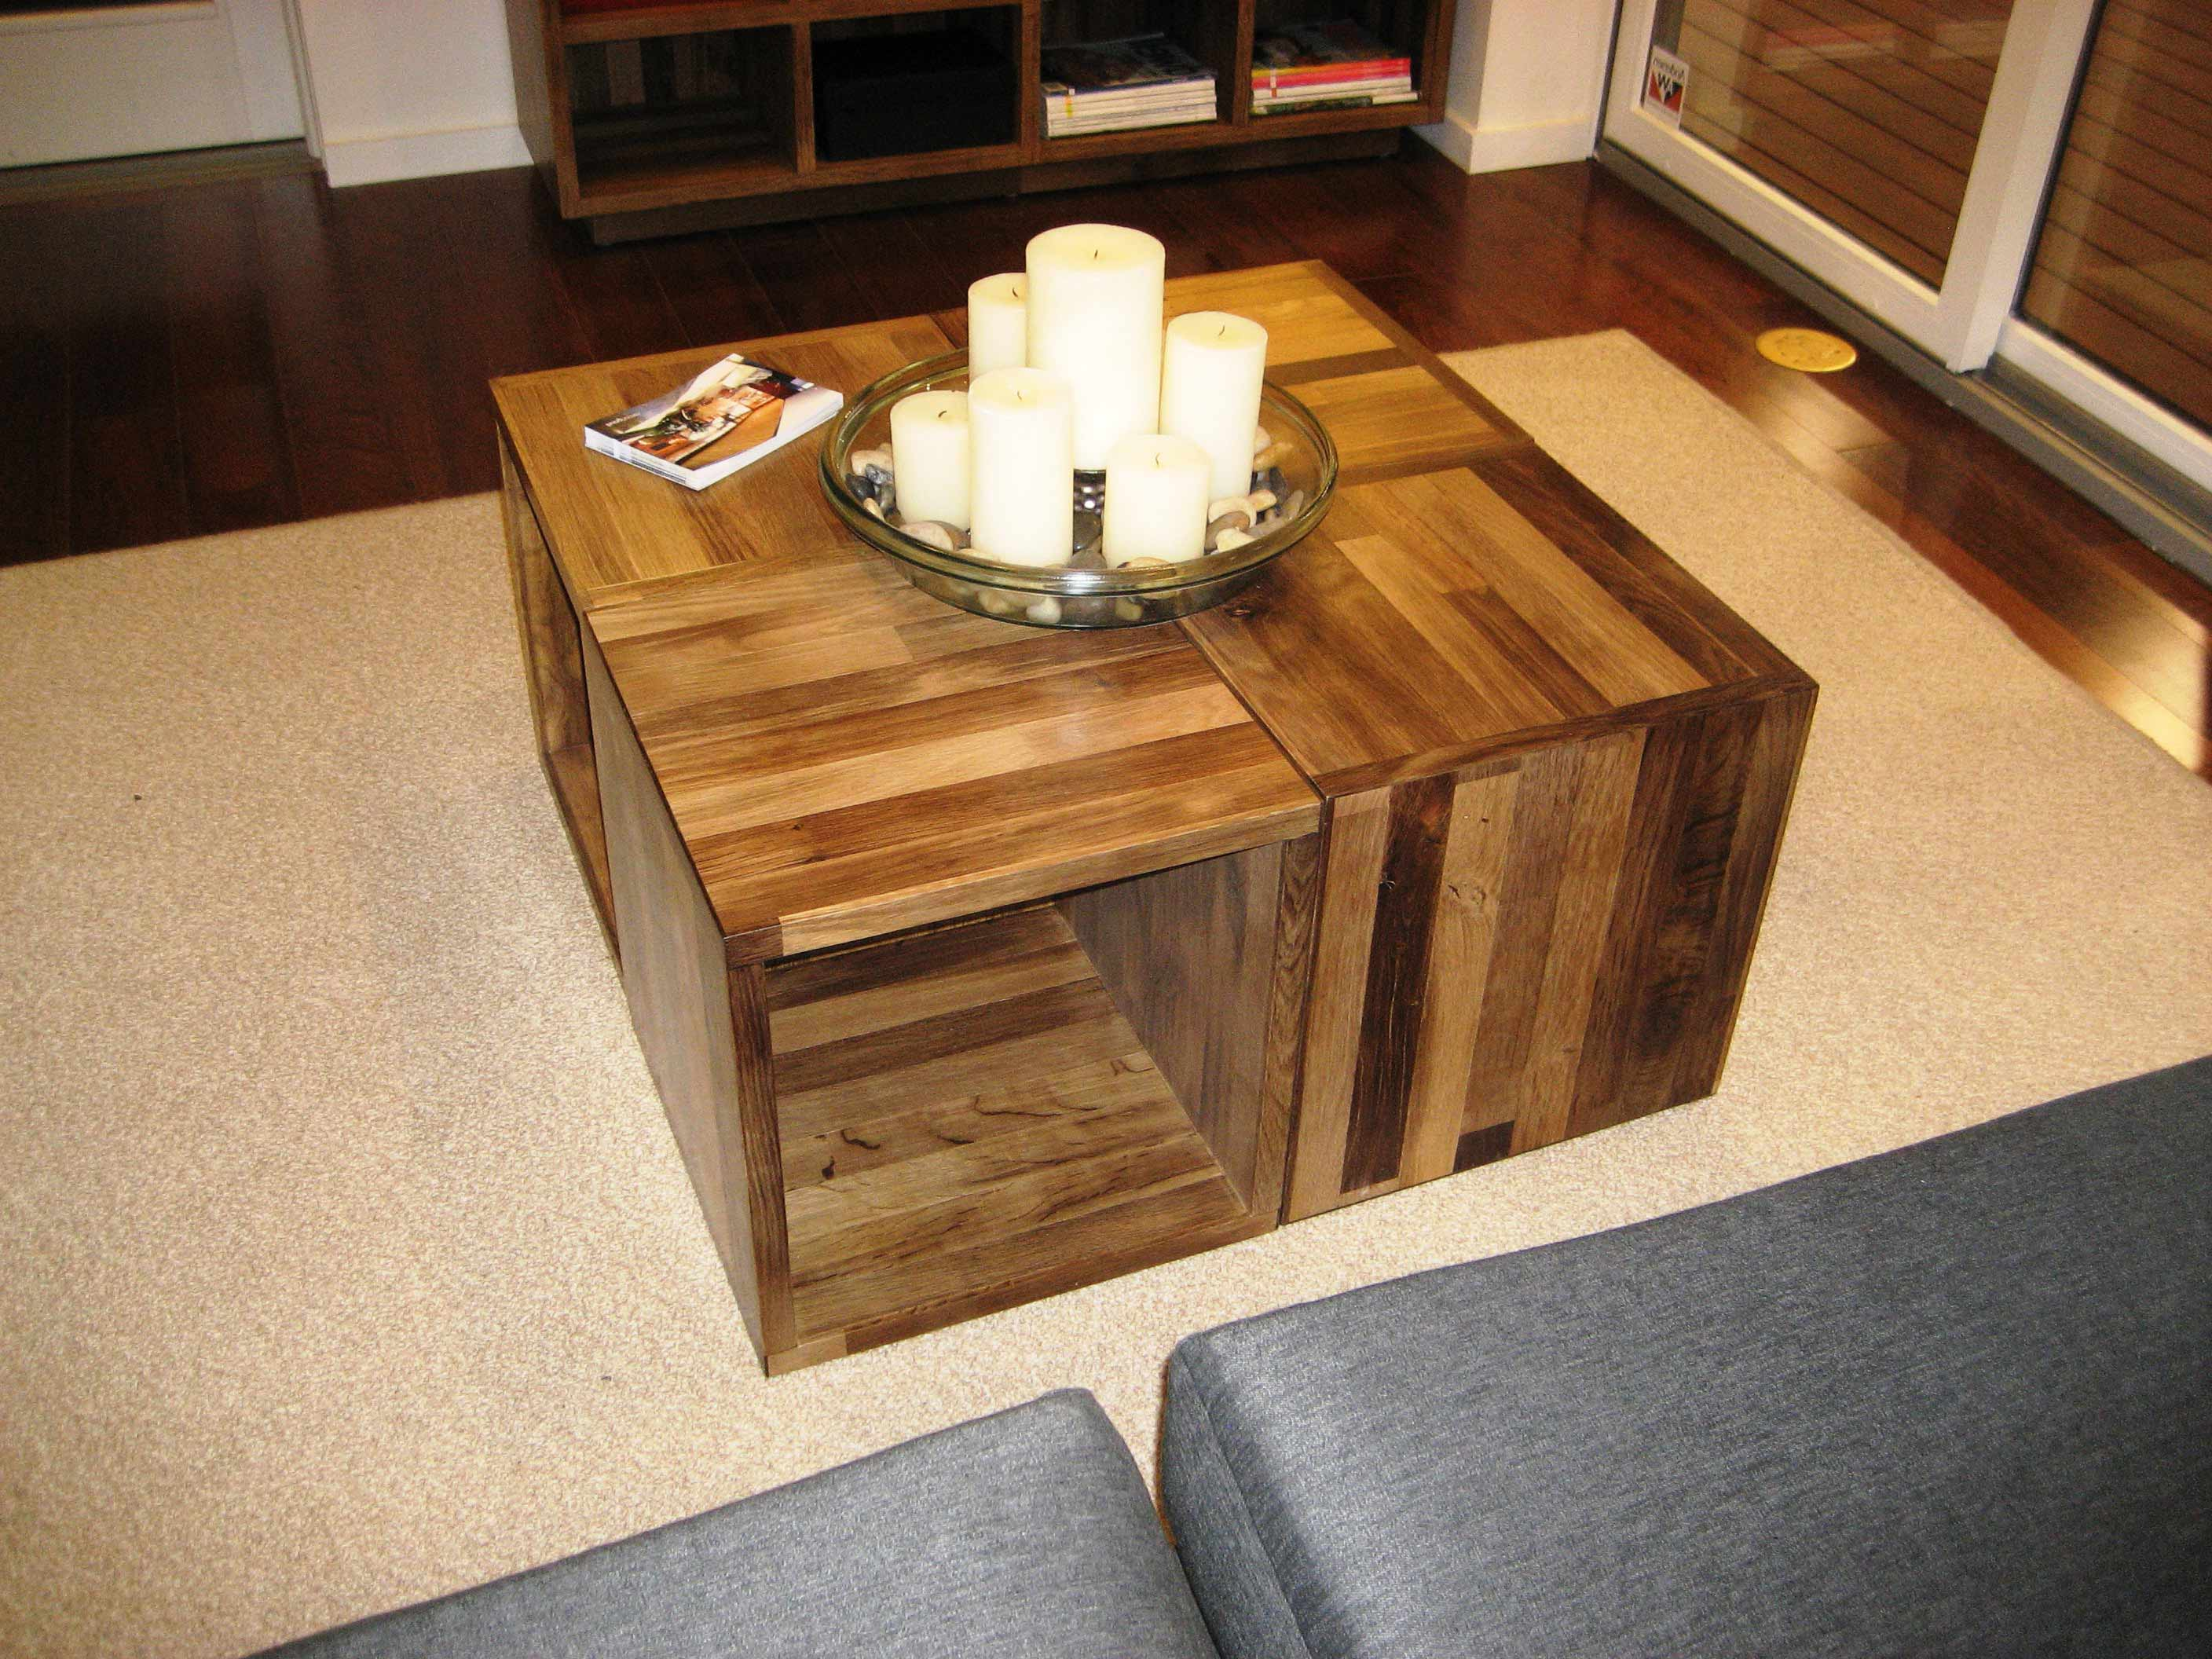 Cherry Wood Coffee Table With Glass Top and Storages